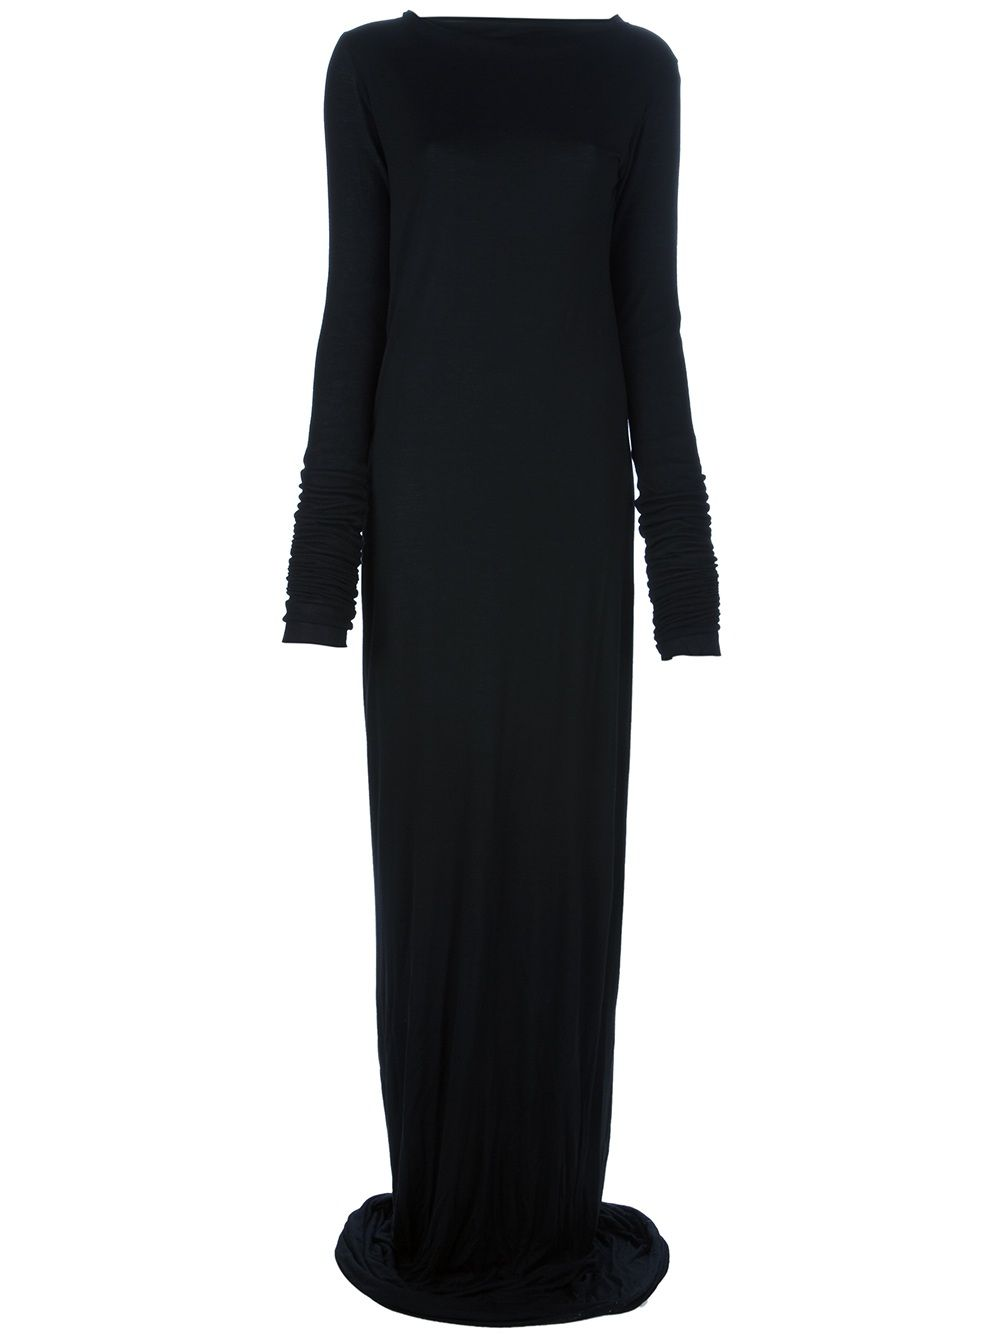 Womenus black long sleeved maxi dress pinterest long sleeve maxi